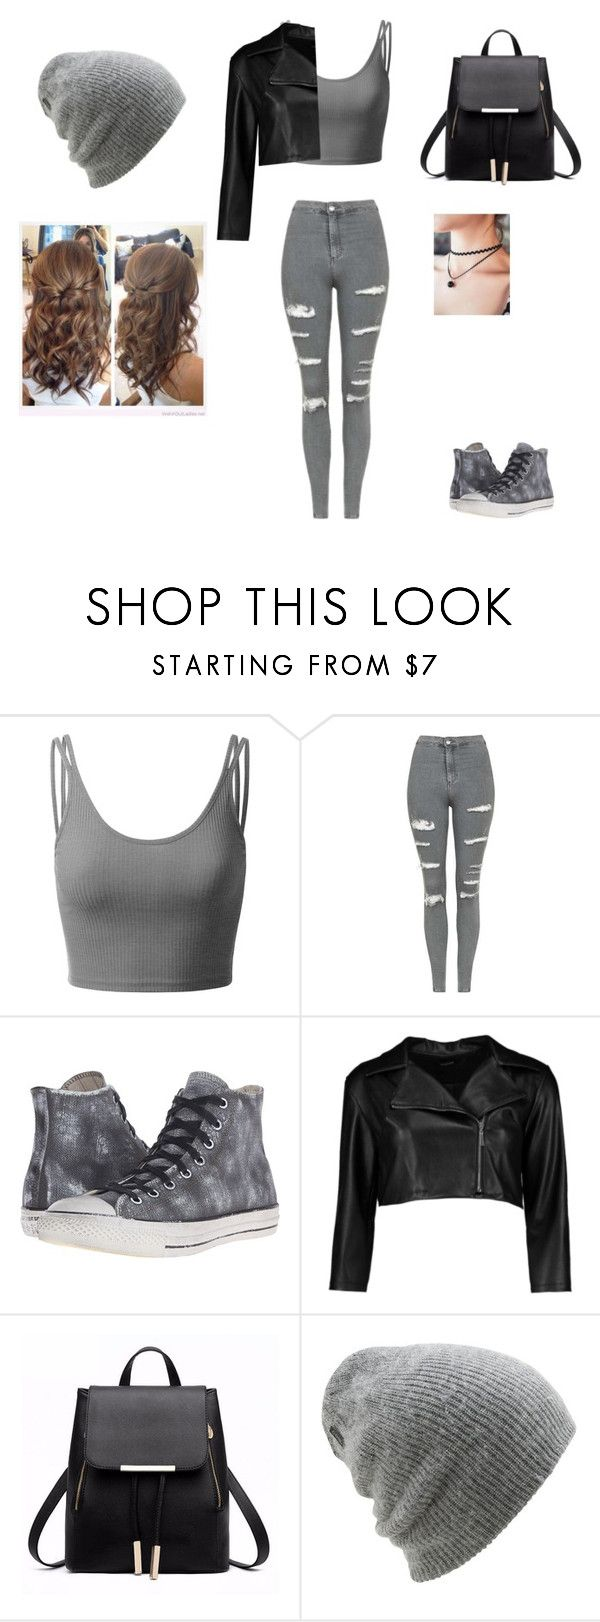 """Untitled #165"" by kendall-01 ❤ liked on Polyvore featuring Doublju, Topshop, Converse, Boohoo and Coal"